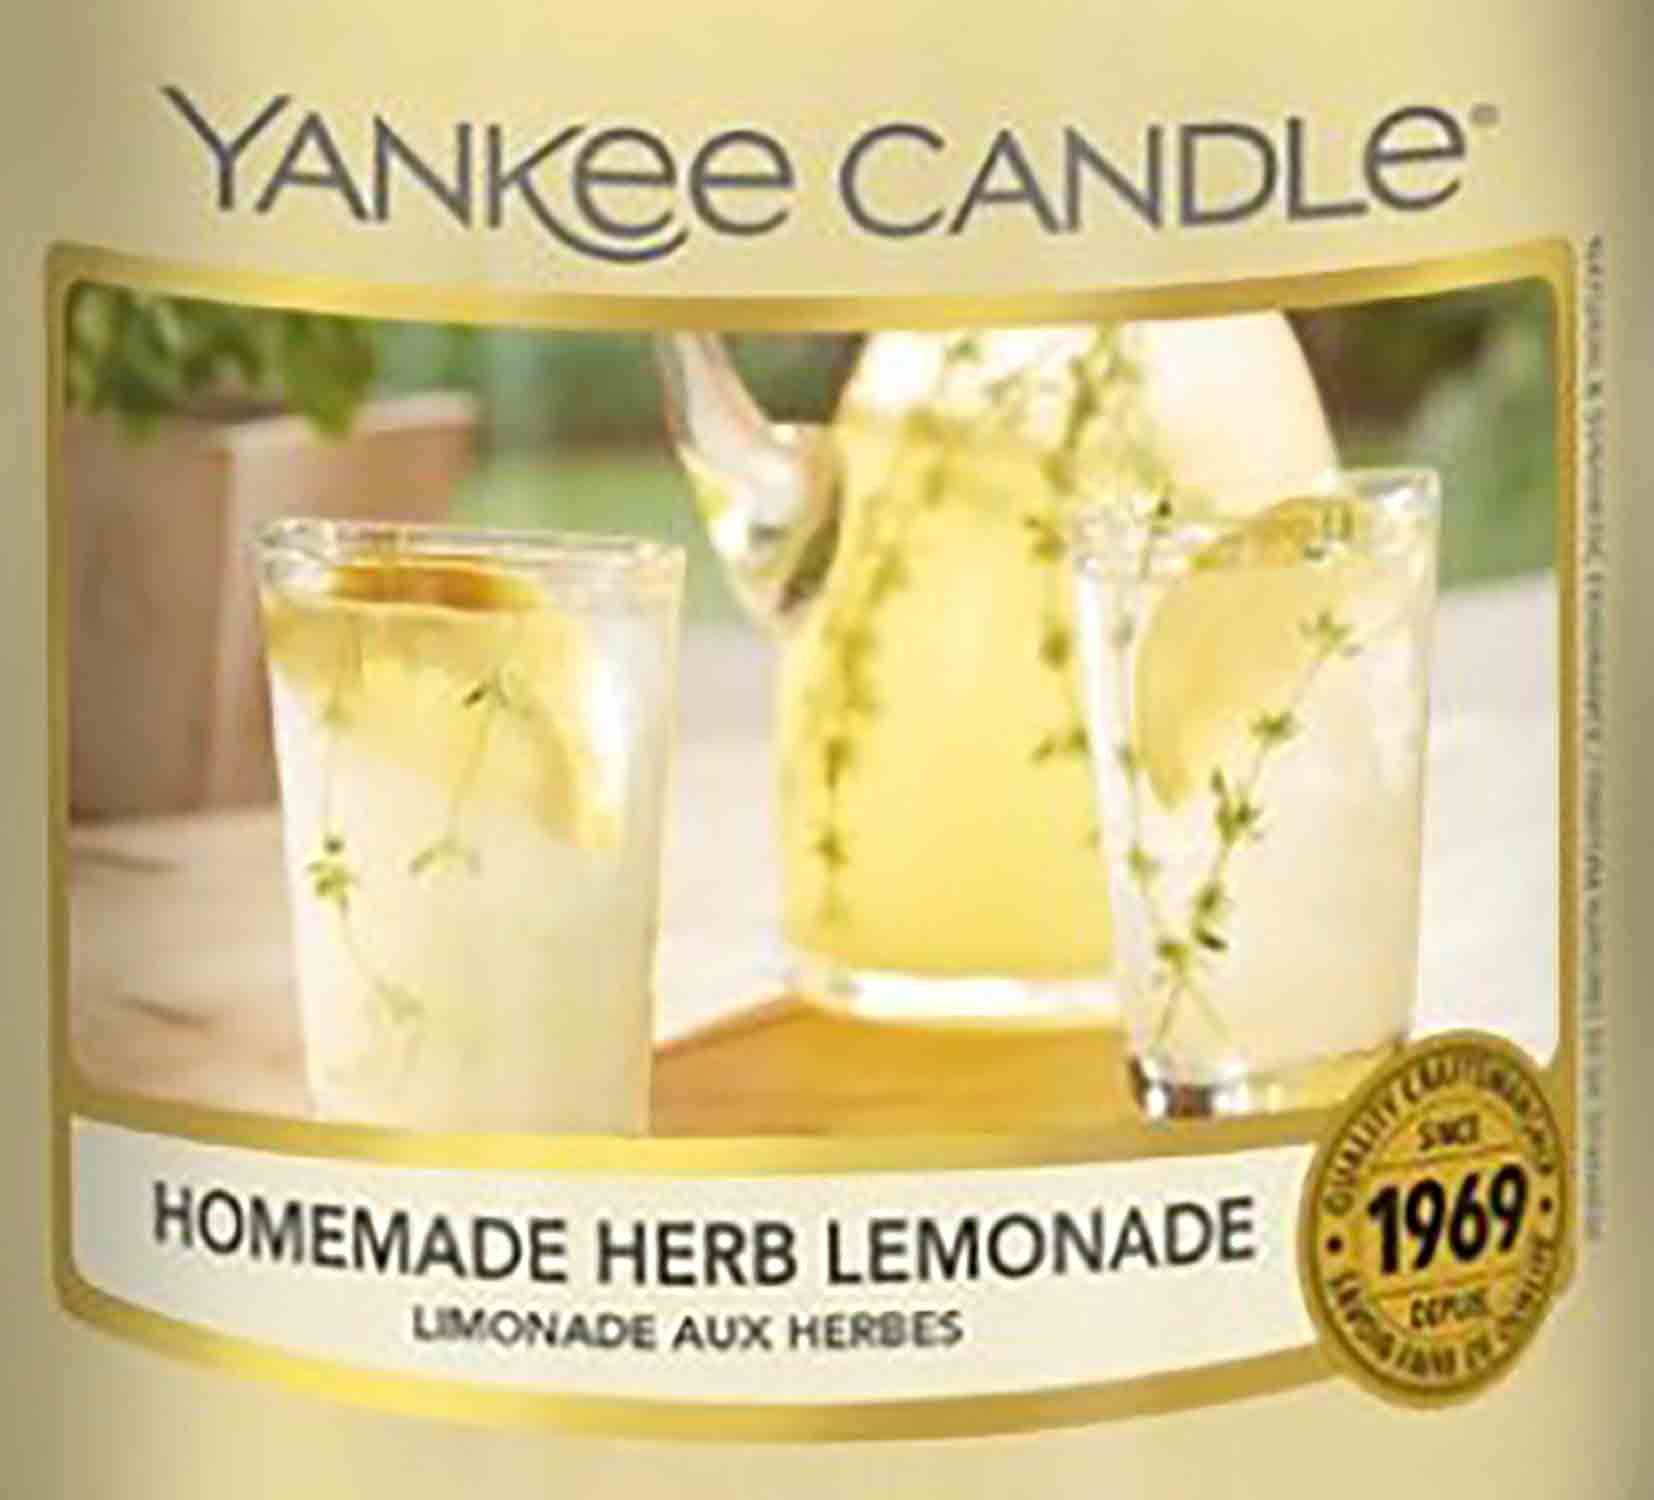 Crumble vosk Yankee Candle Homemade Herb Lemonade USA 22 g